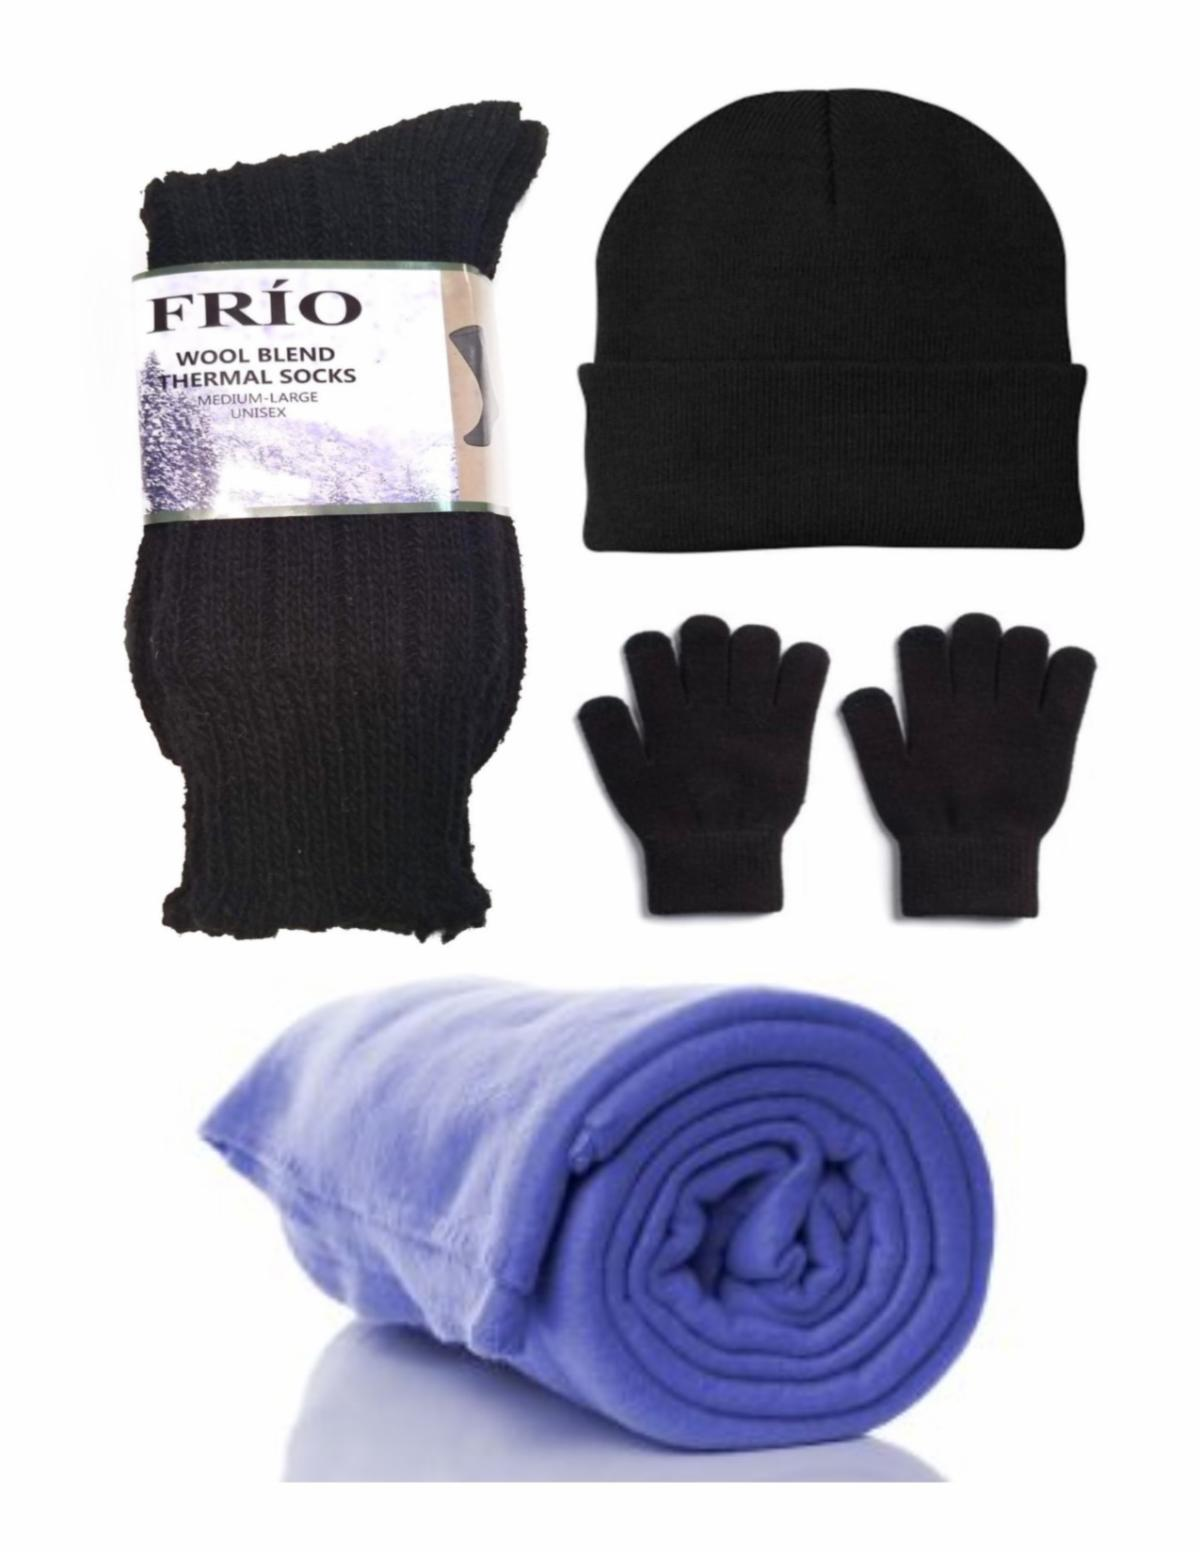 a set of thick black wool socks gloves hat and a fleece blanket are shown